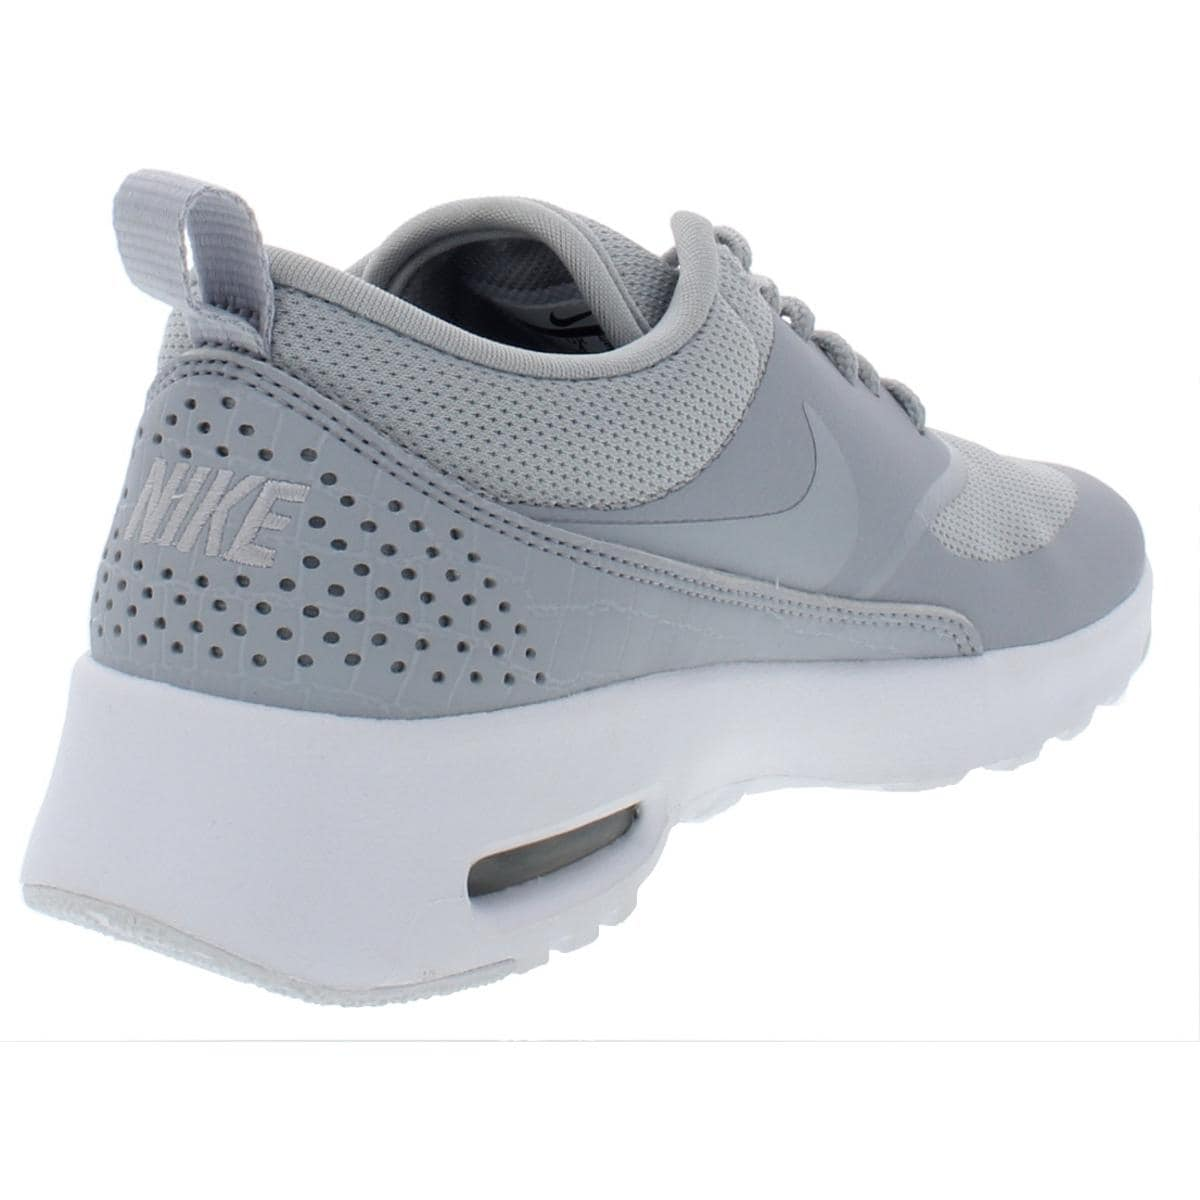 fe5c85cd90 Shop Nike Womens Air Max Thea Athletic Shoes Running Walking - Free  Shipping Today - Overstock - 23871125